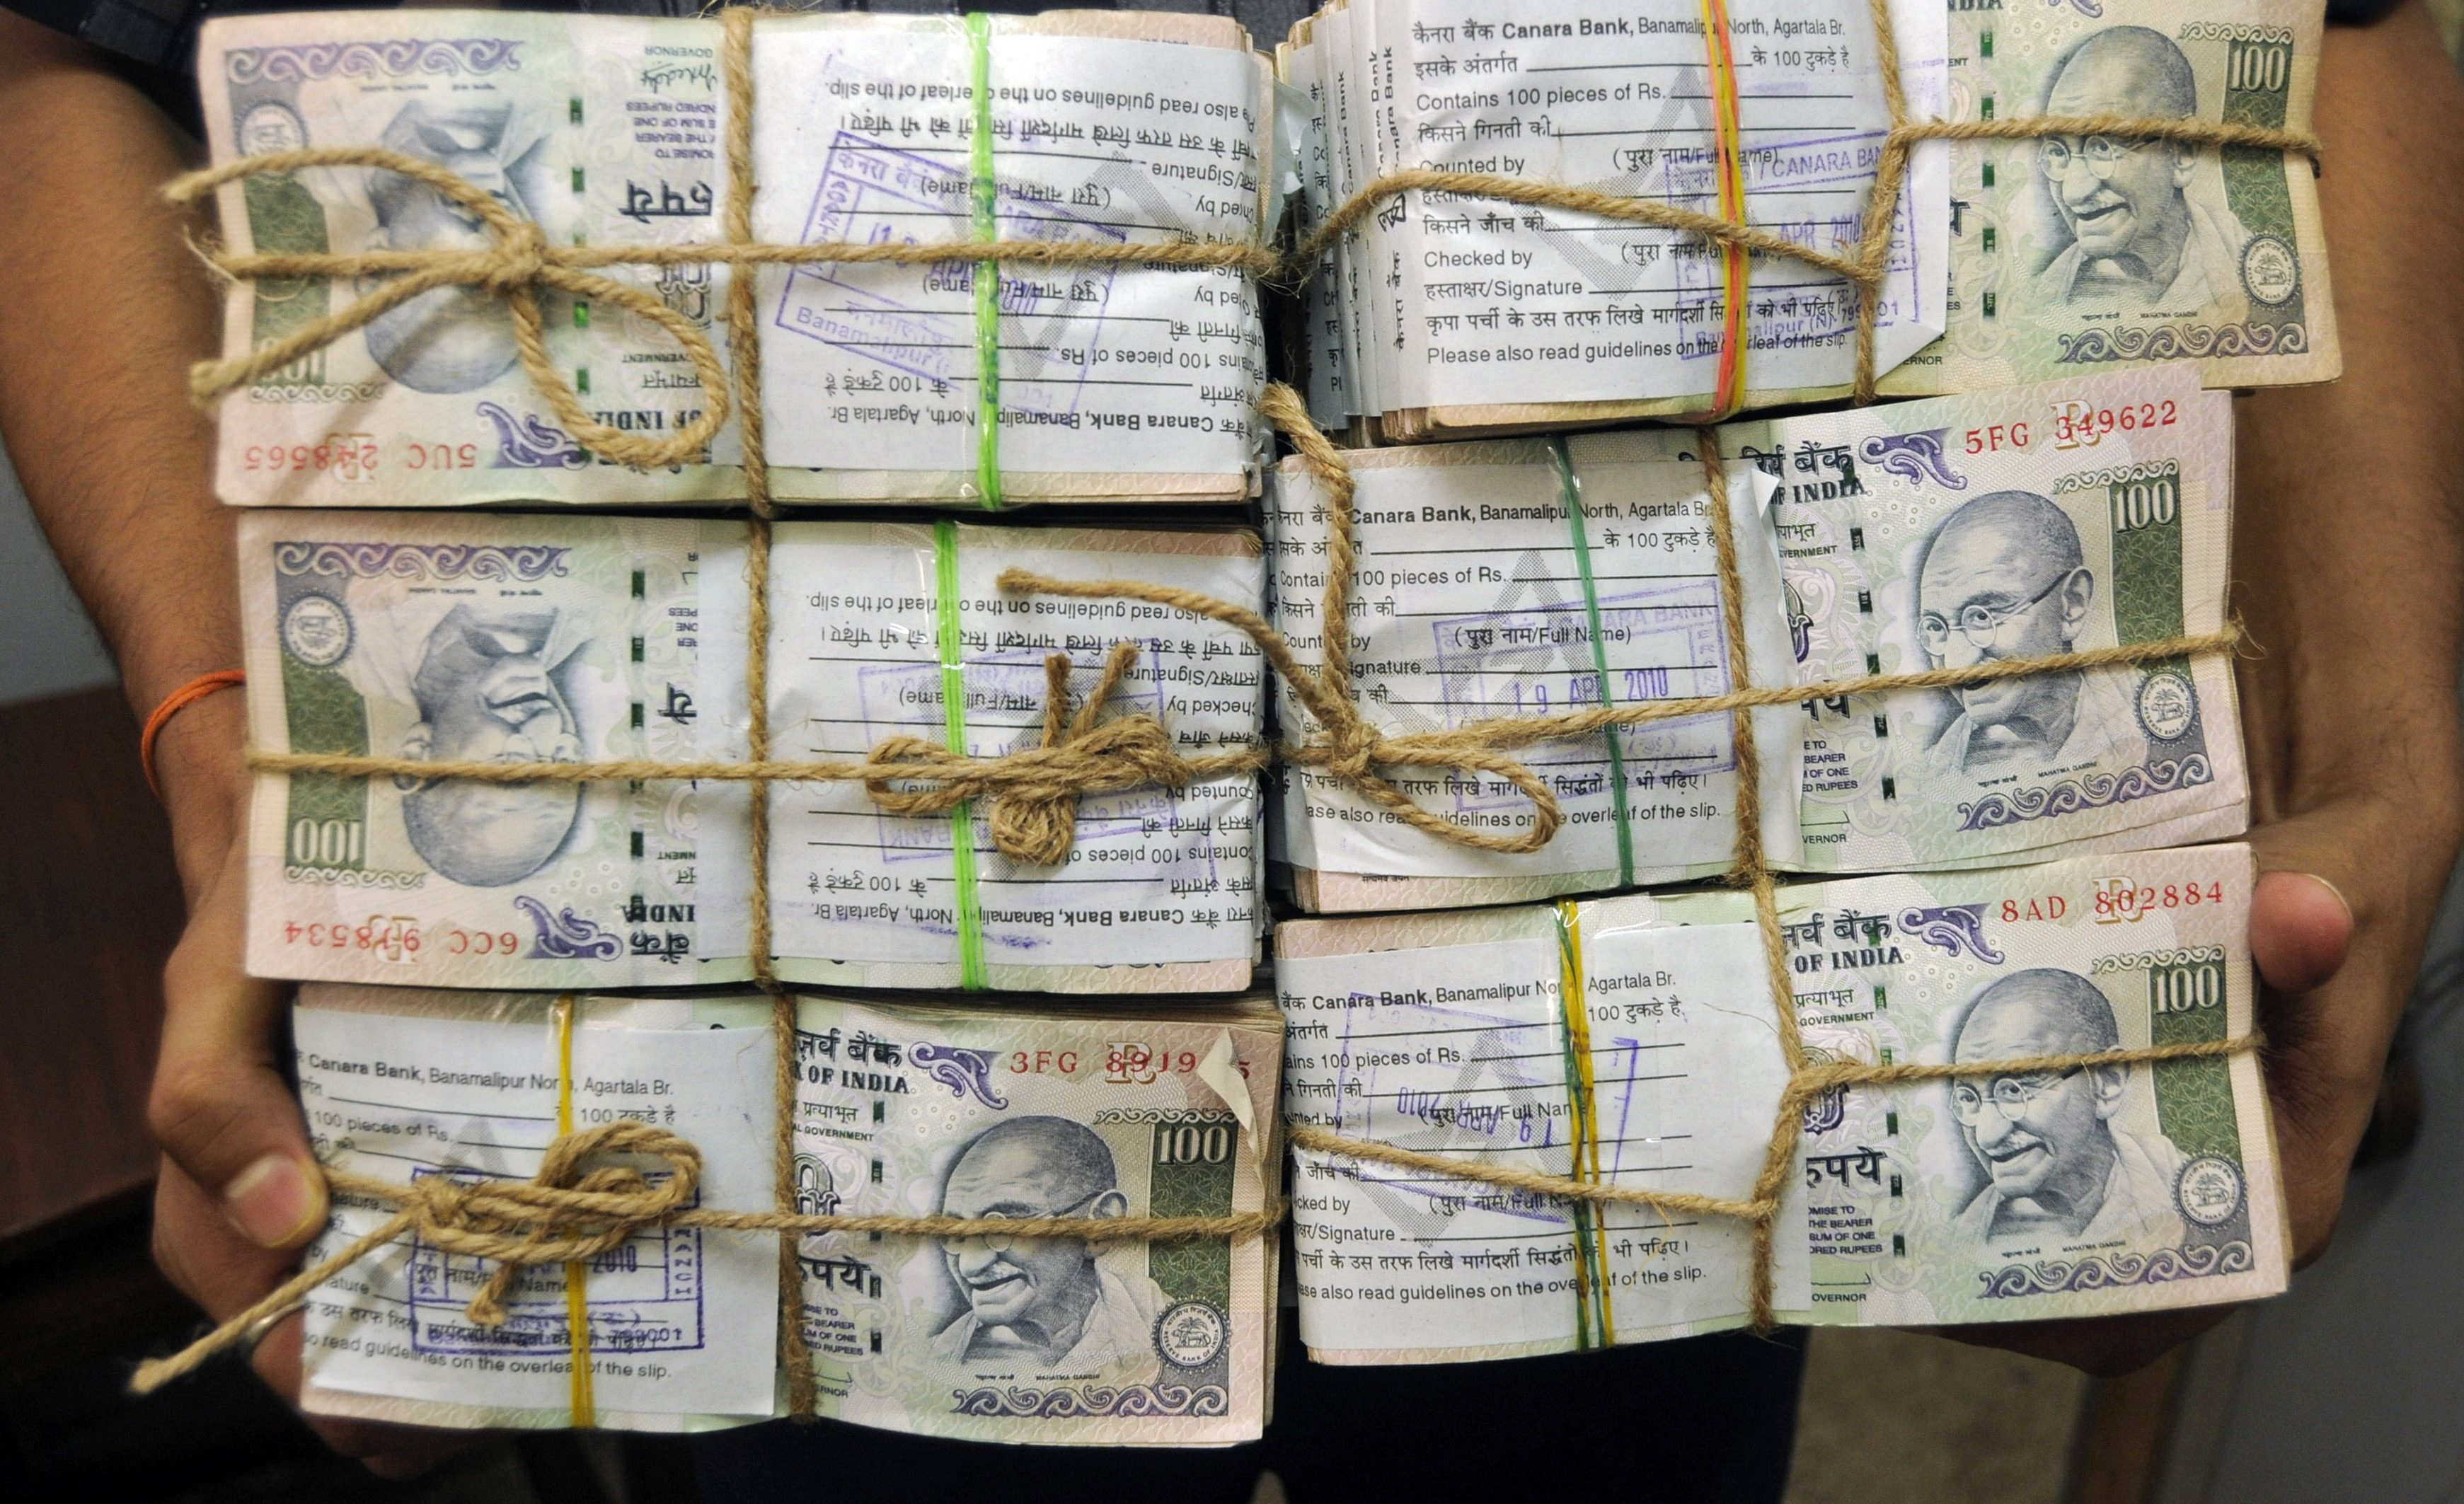 Bundles of Indian currency notes being carried around inside a bank in Agartala, Tripura.